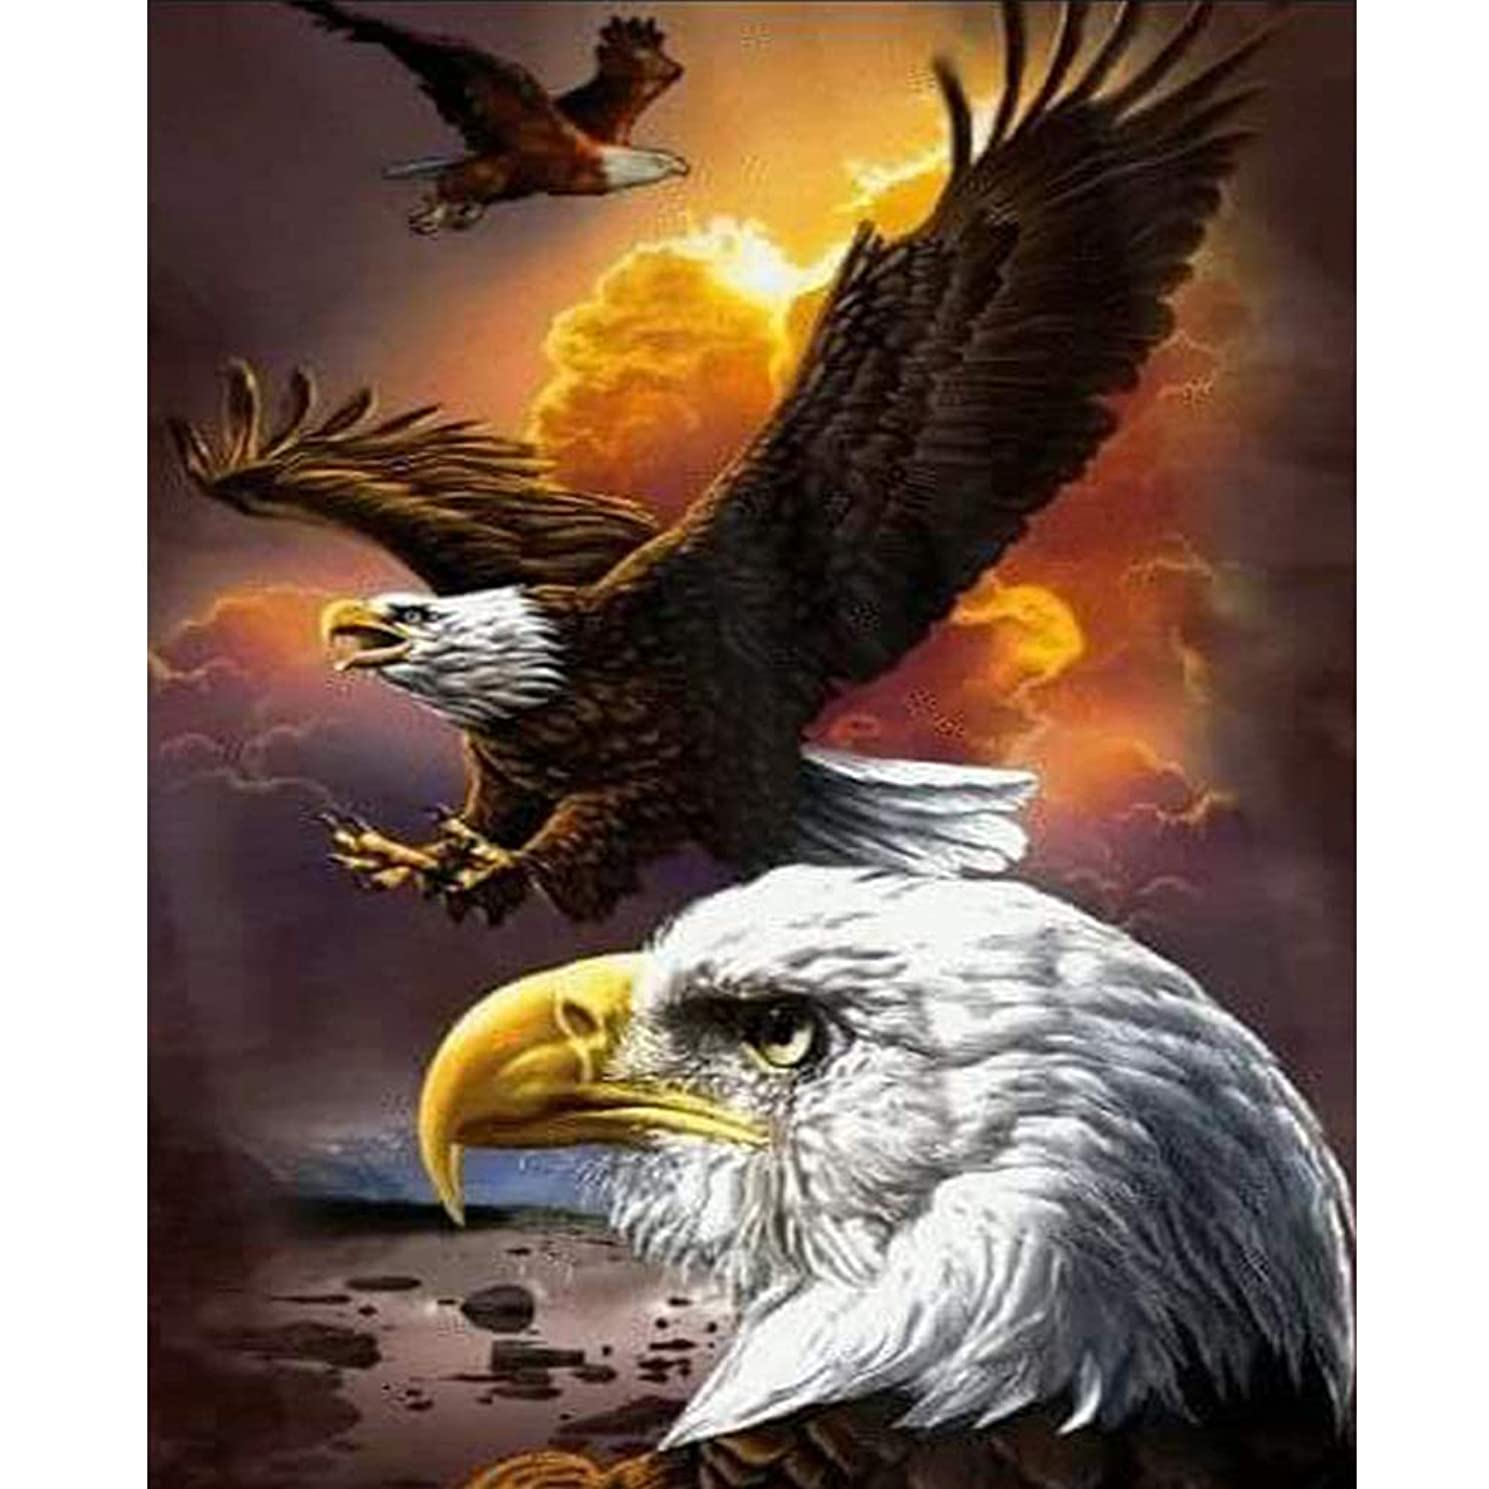 DIY 5D Diamond Painting Kits for Adults ,Full Drill Diamond Embroidery Dotz Kit Home Wall Decor(Eagle 11.8 x 15.8 in)